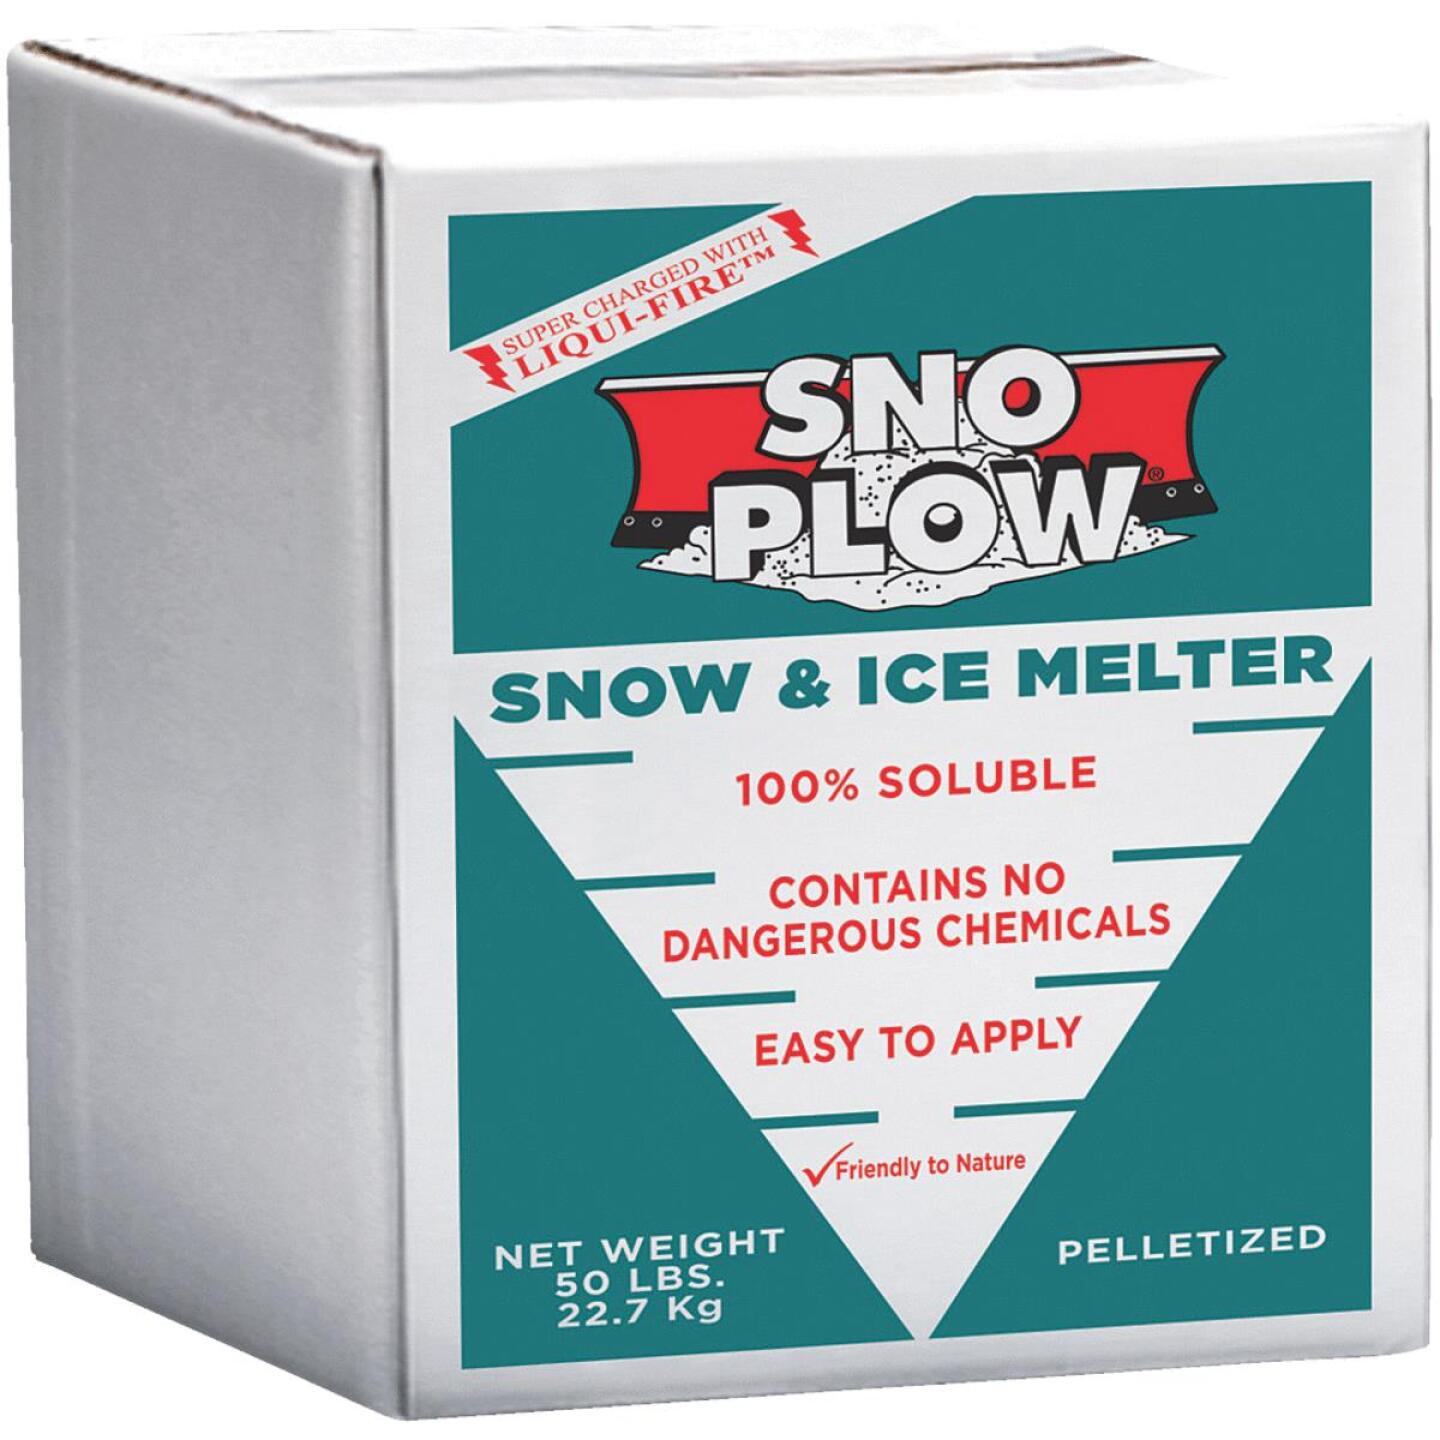 Sno Plow 50 Lb. Box Ice Melt Pellets Image 1